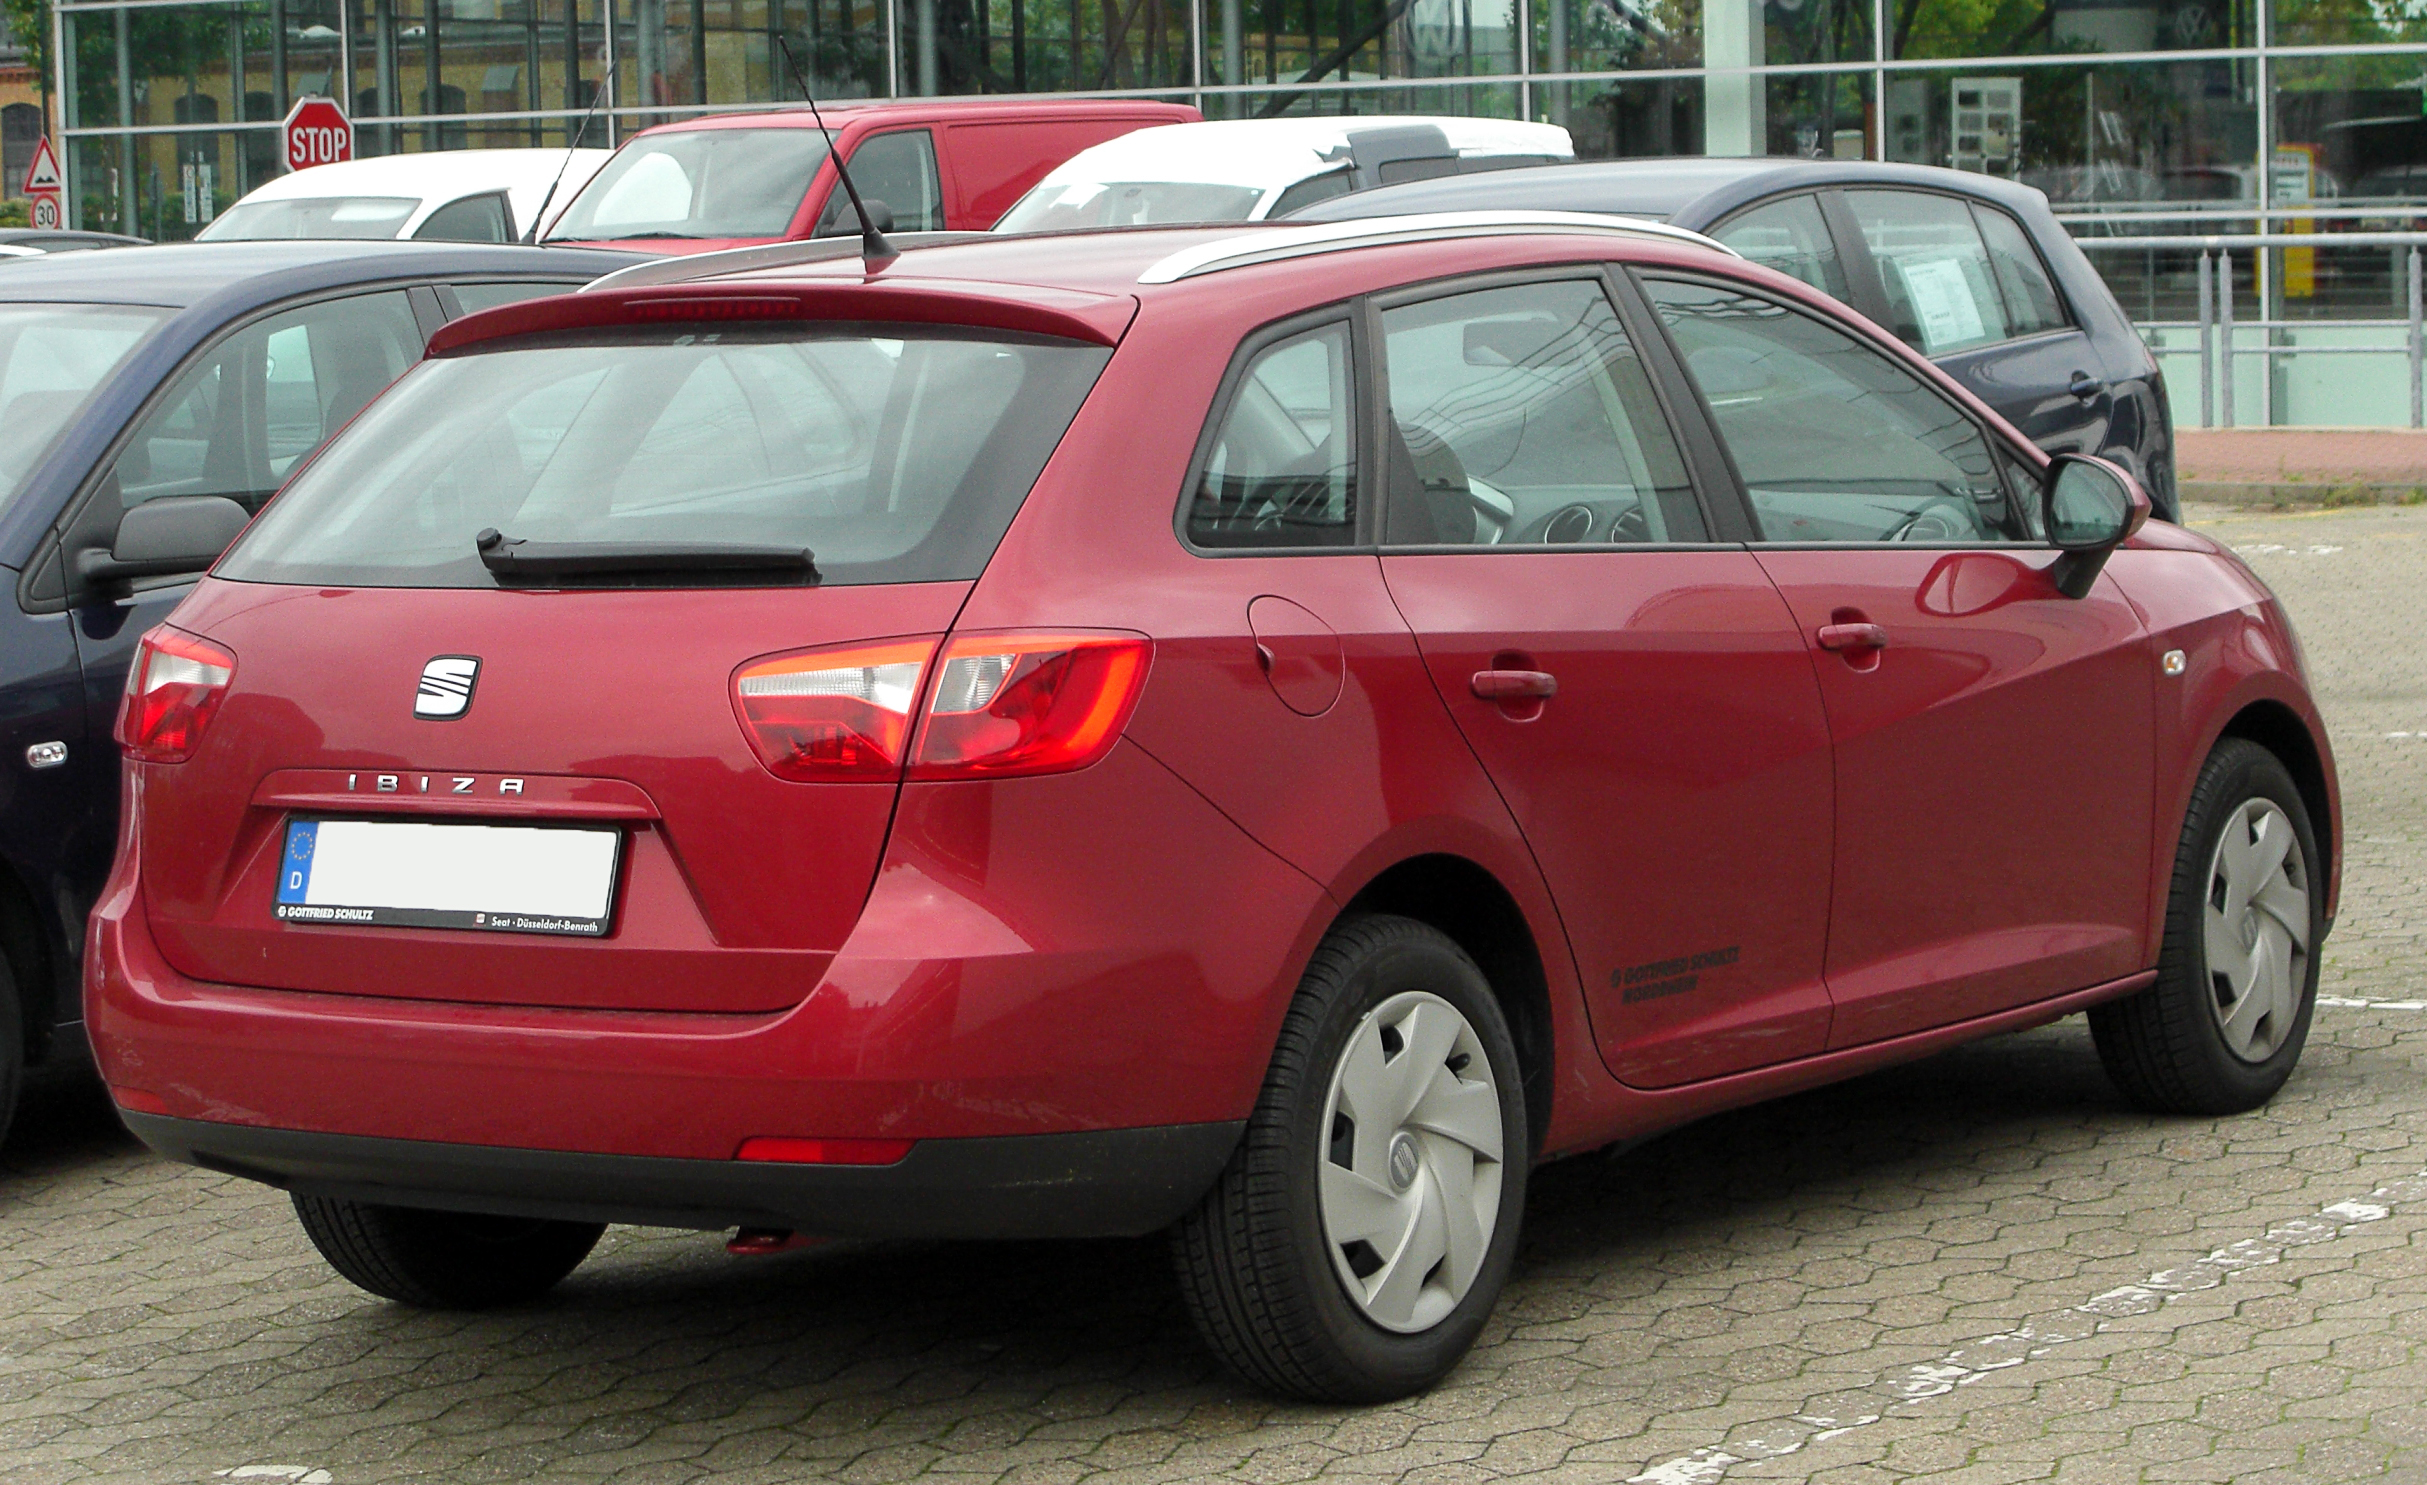 2010 seat ibiza st pictures information and specs auto. Black Bedroom Furniture Sets. Home Design Ideas